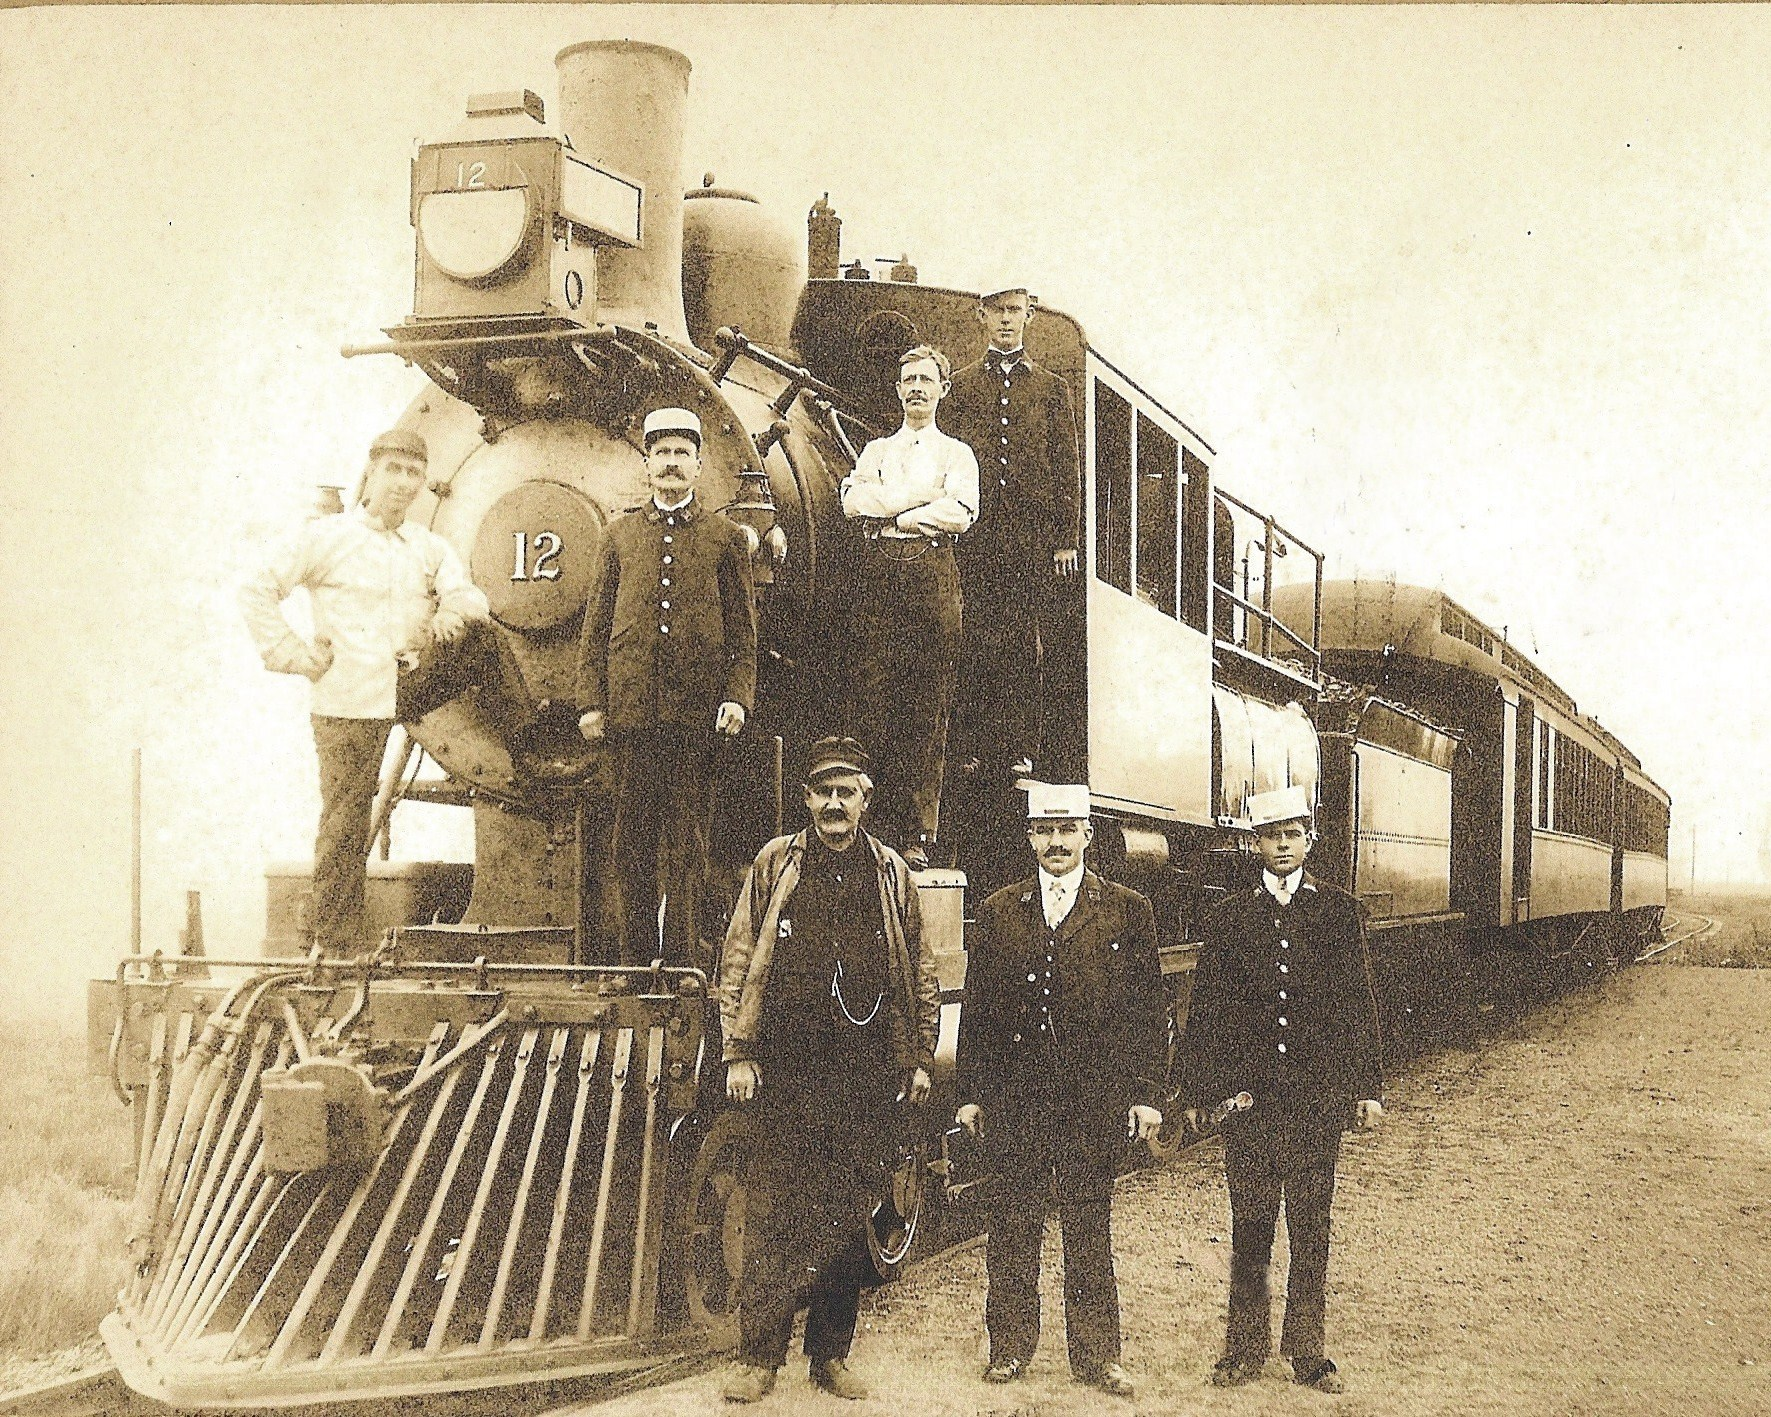 Engine and Train crew at the Tuckahoe station@1905